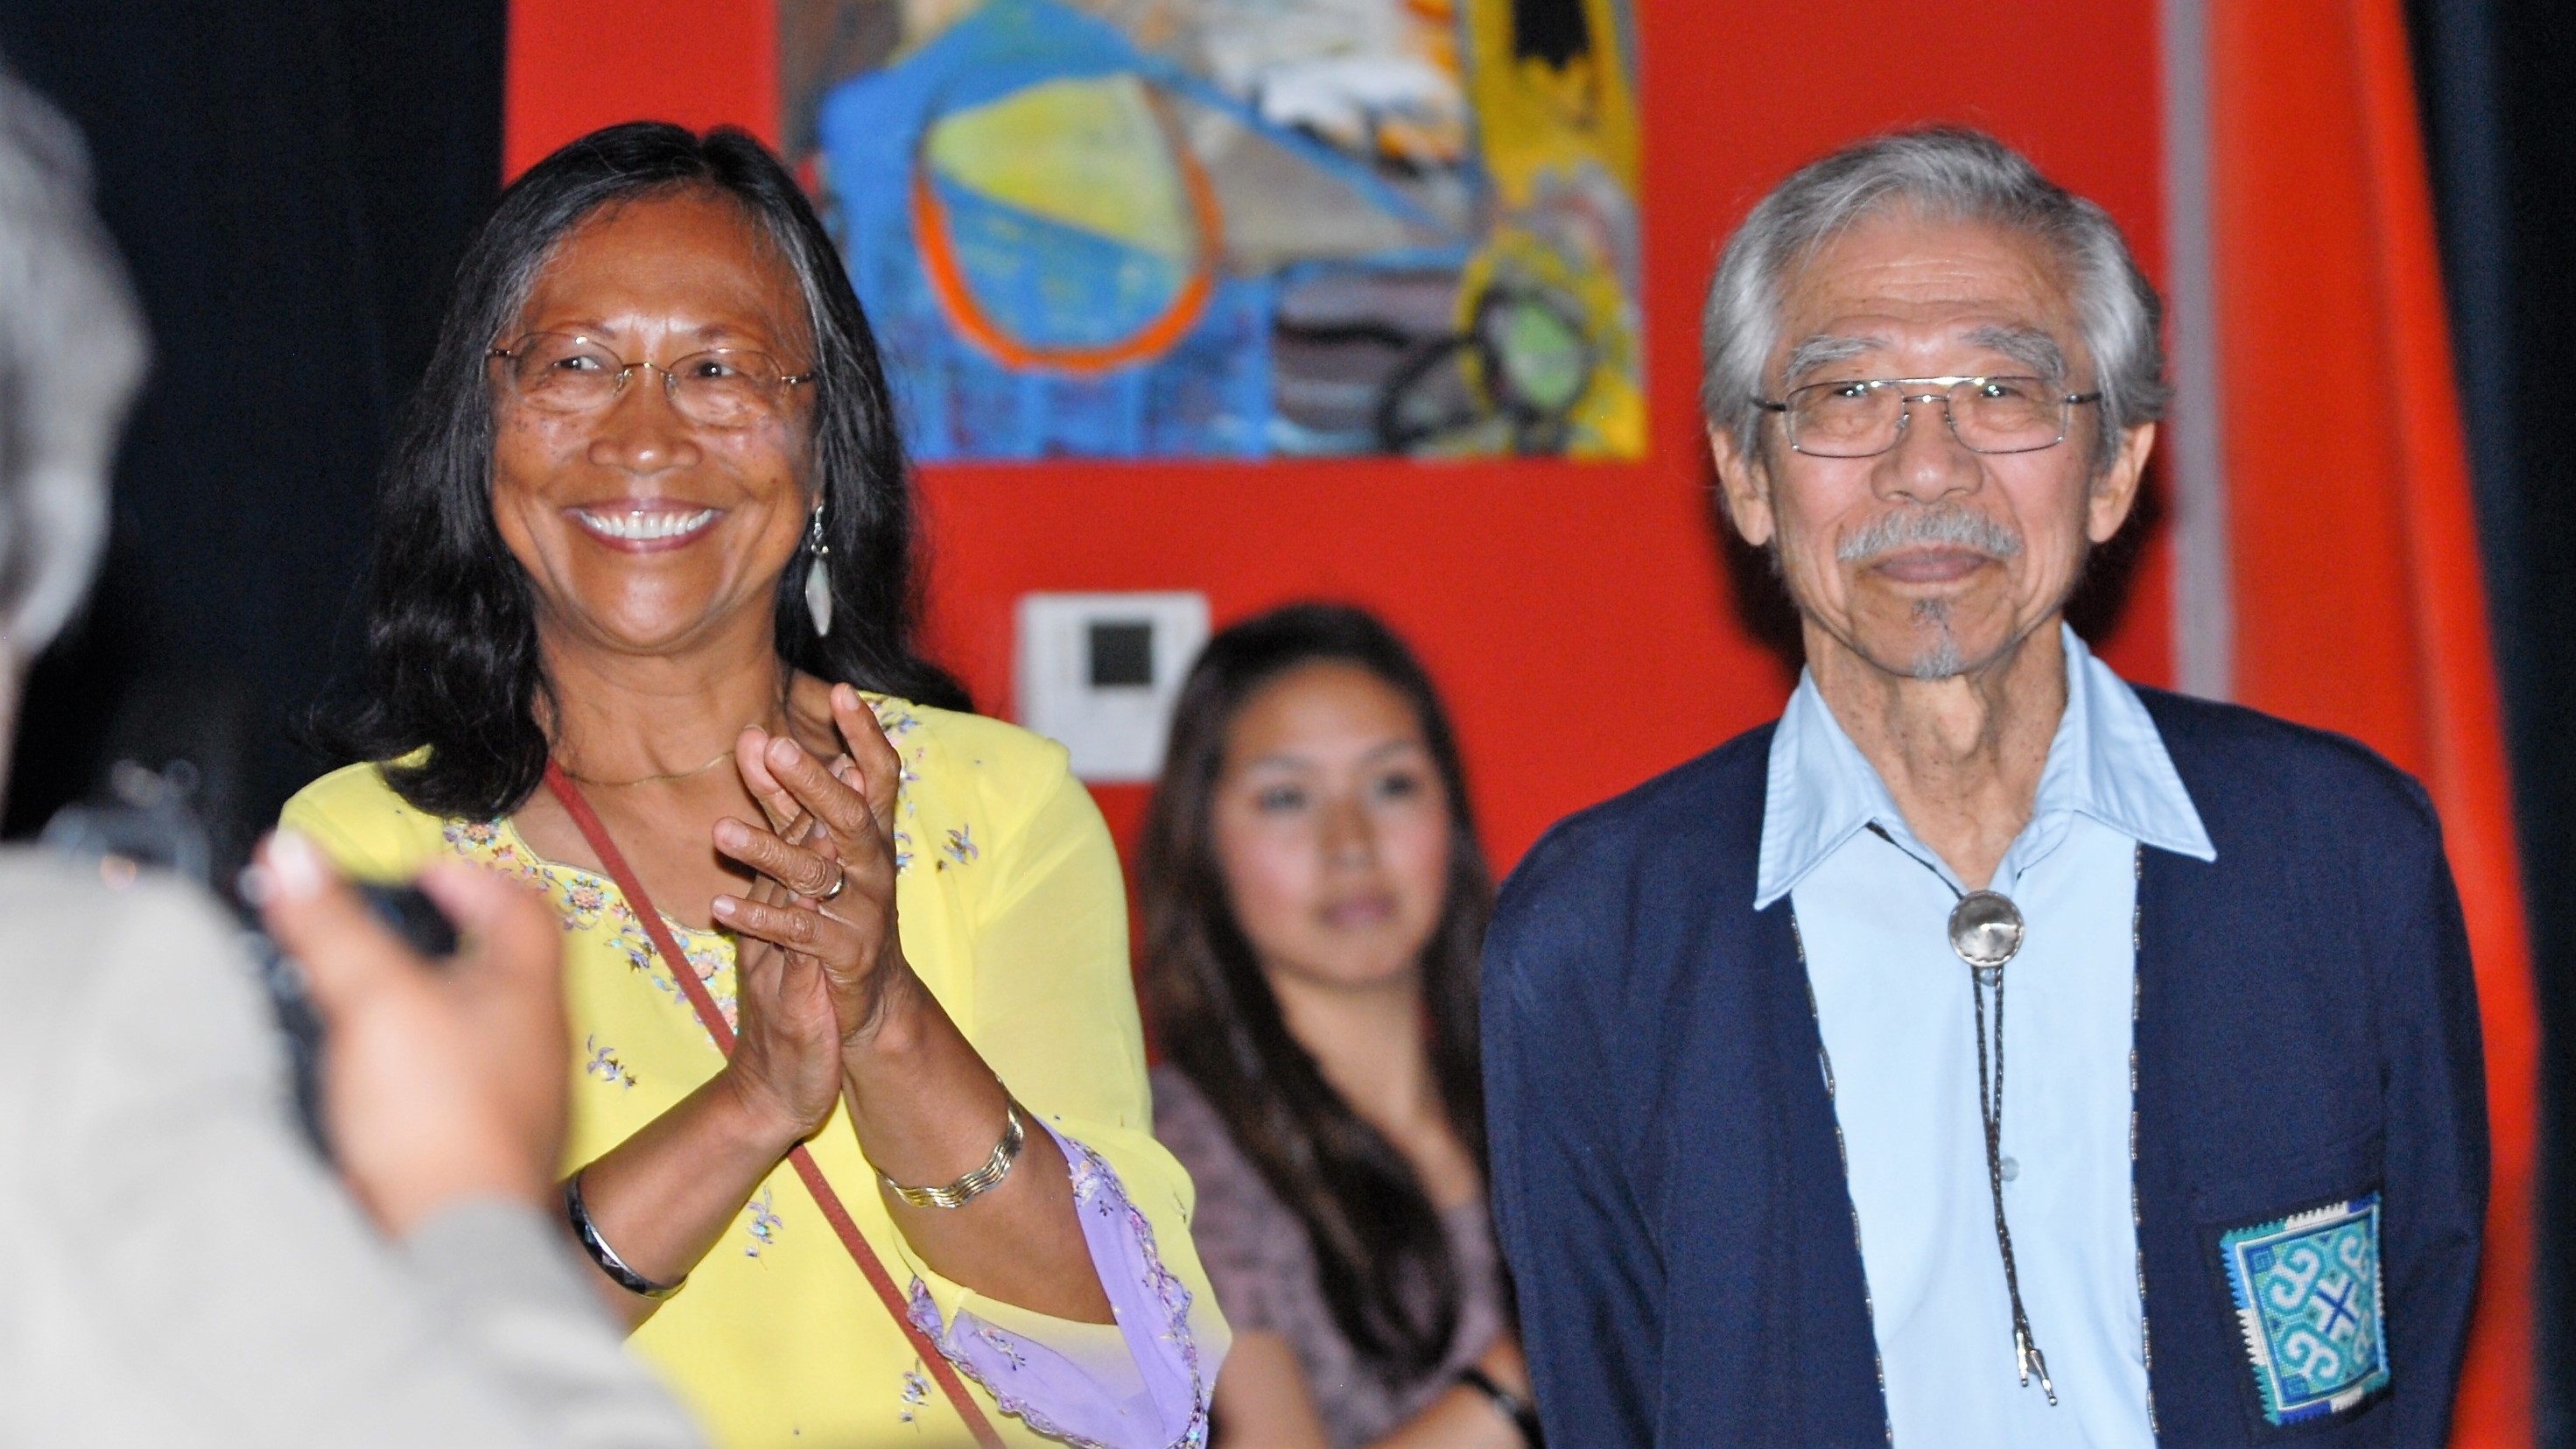 Juanita Tamayo Lott and James Akira Hirabayashi at College of Ethnic Studies Anniversary Celebration, 2011